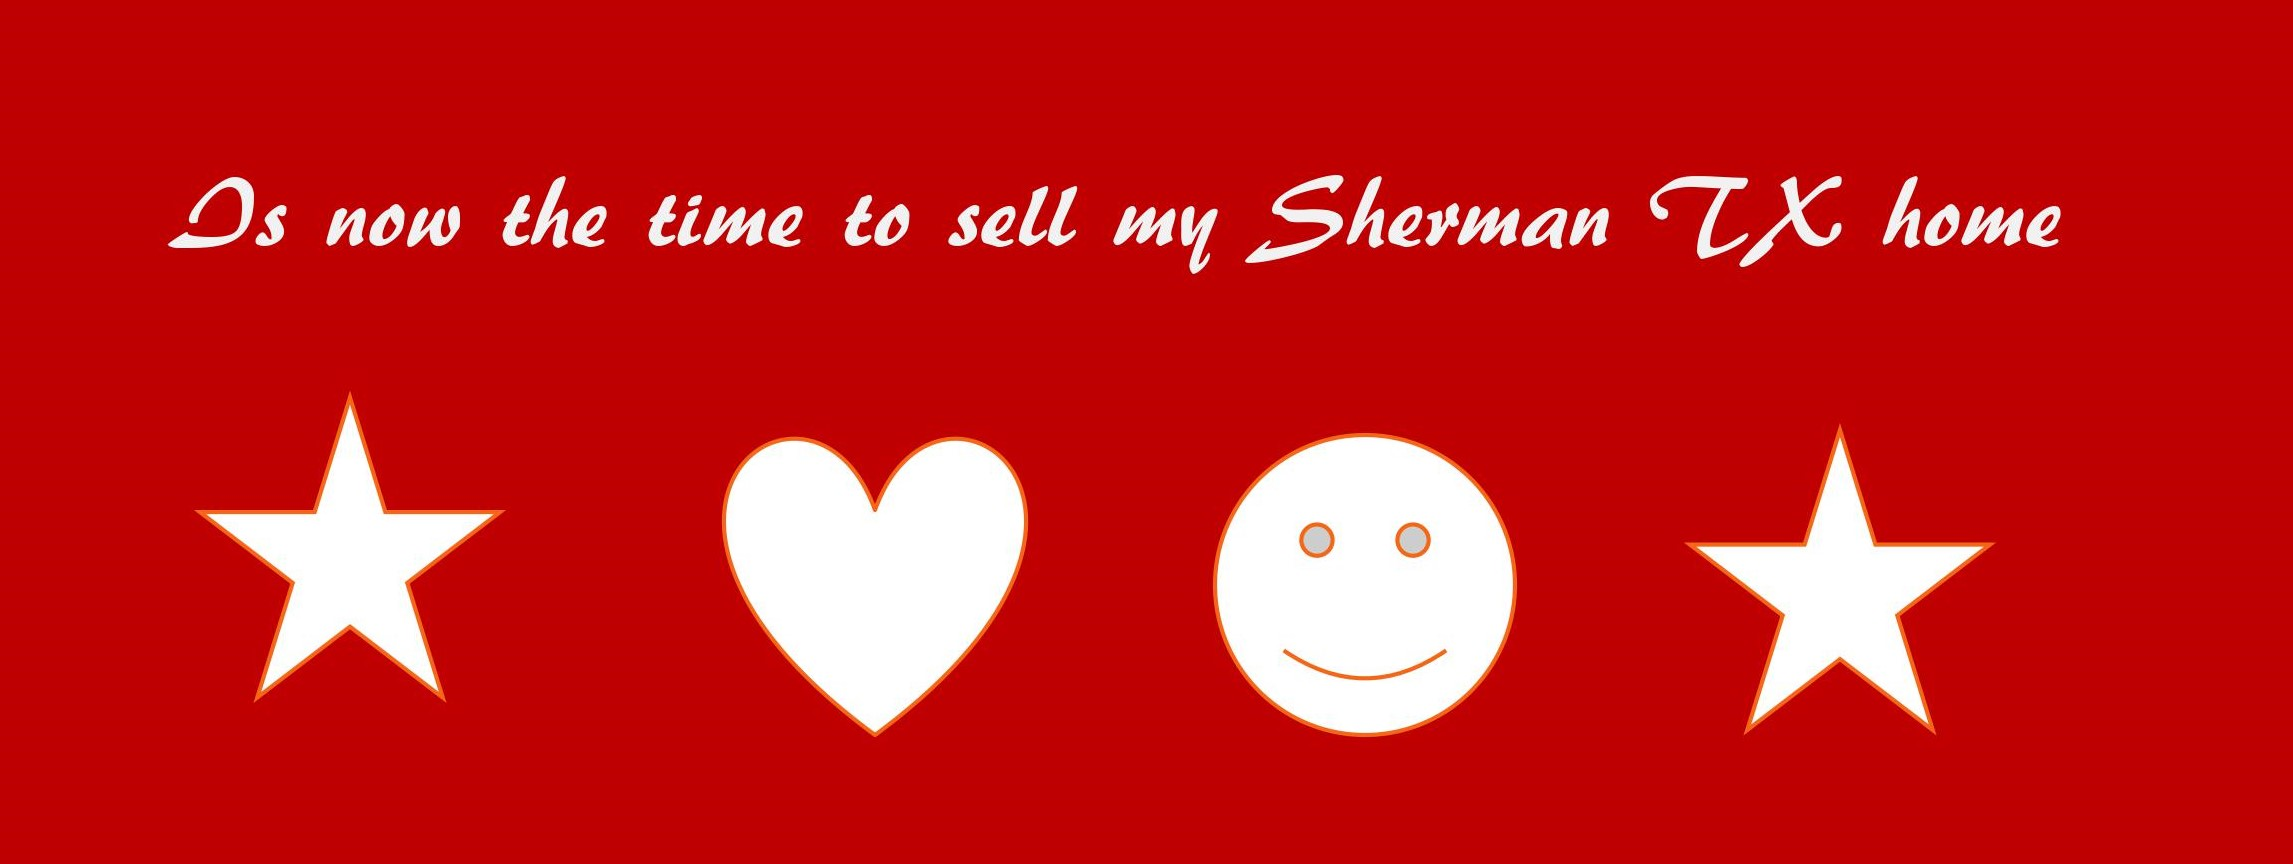 Is now time to sell my Sherman home